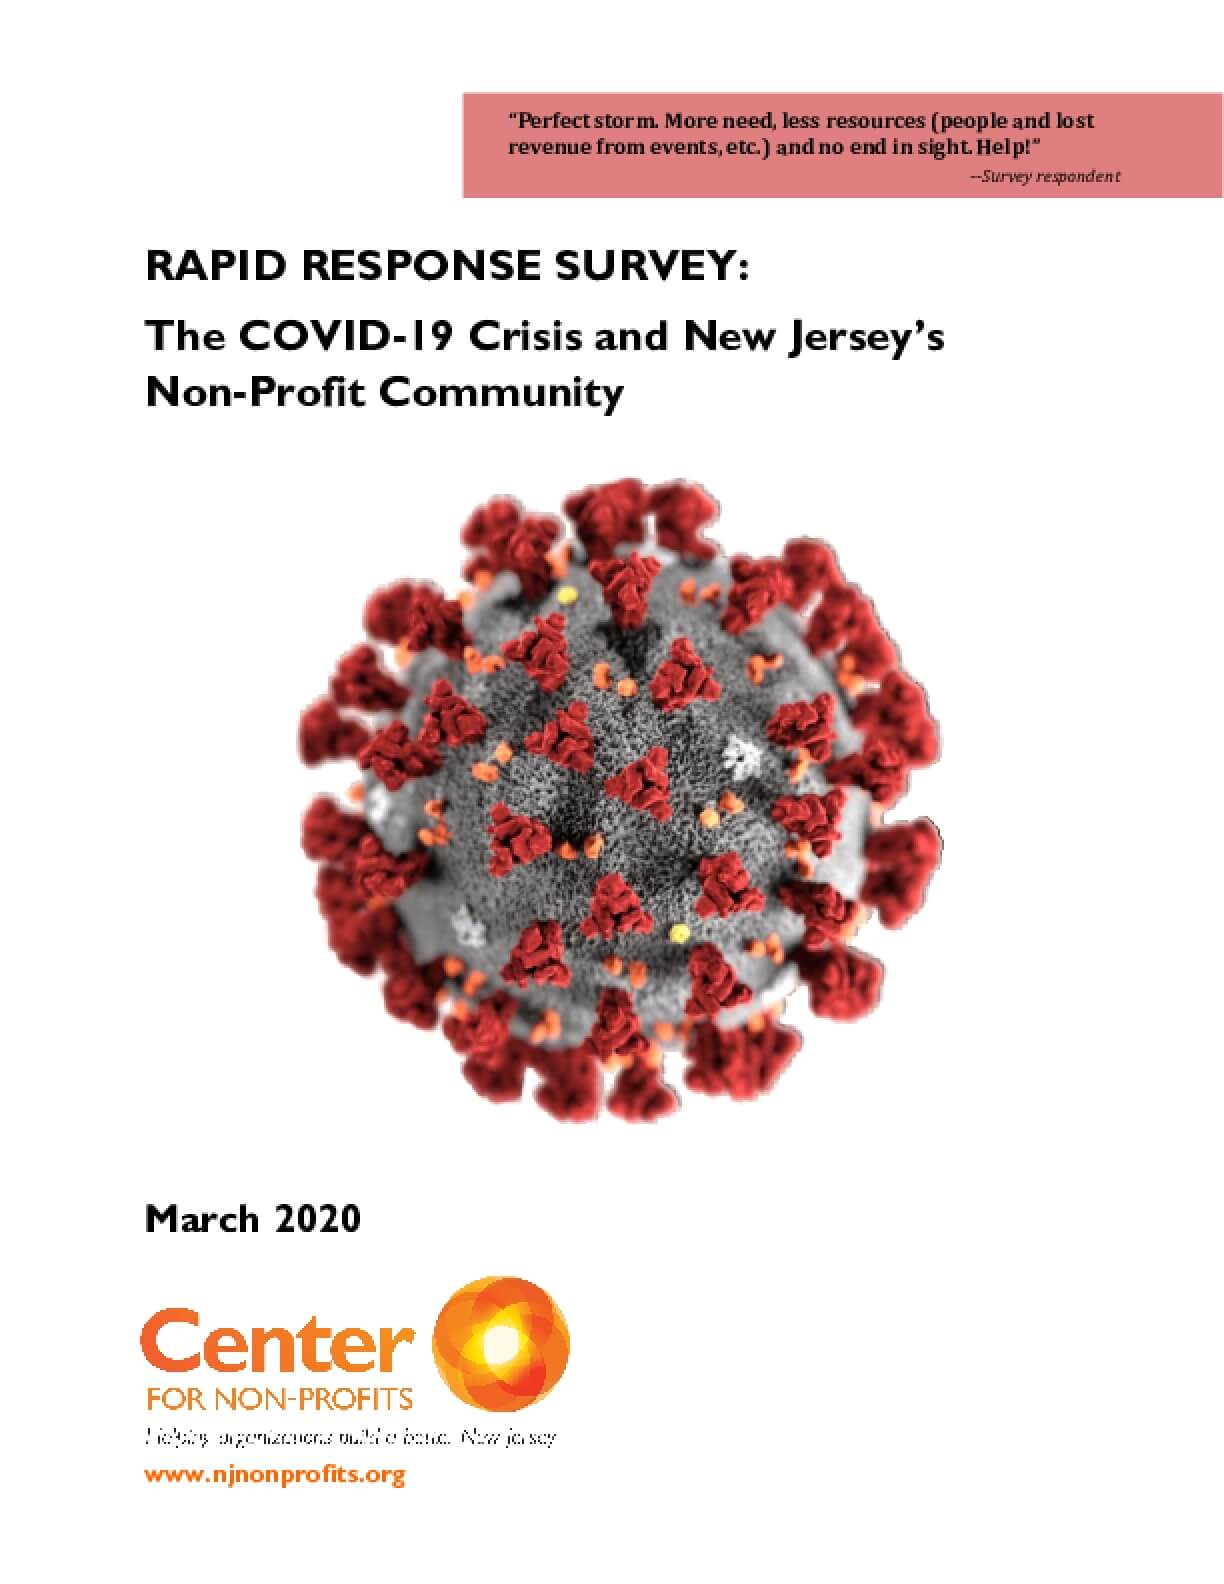 Rapid Response Survey: The COVID-19 Crisis and New Jersey's Non-Profit Community